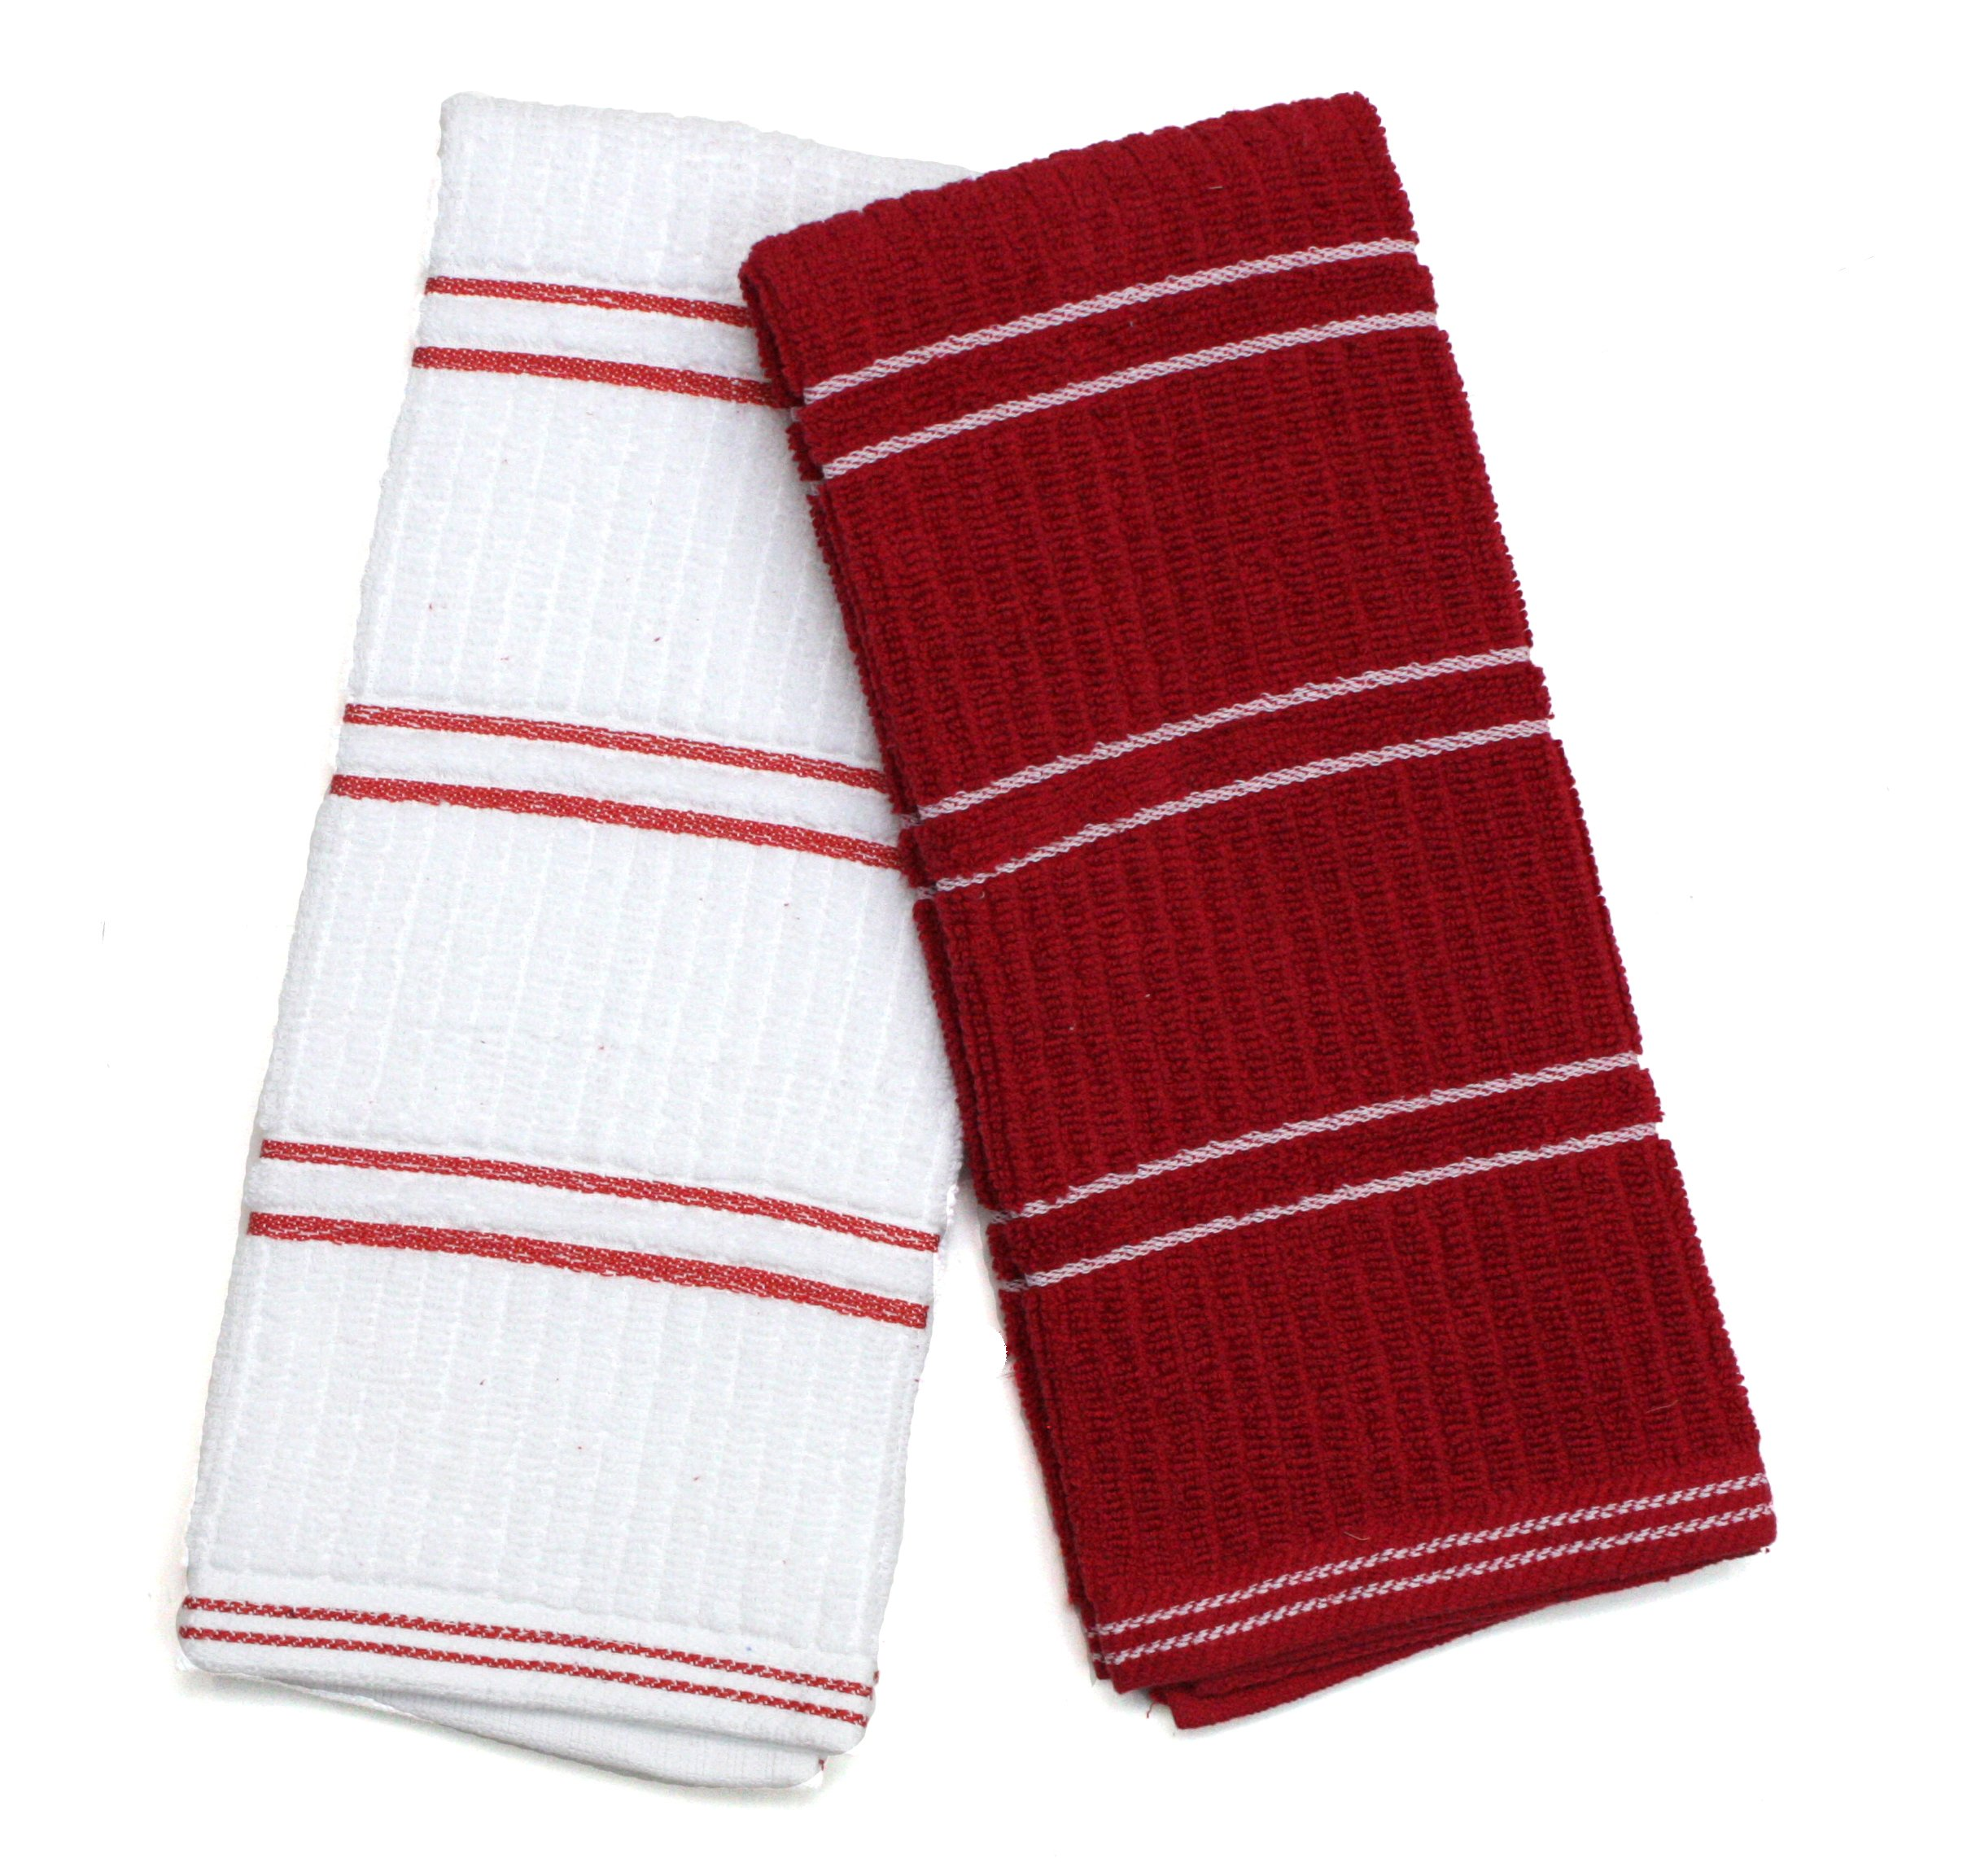 J&M Home Fashions Ribbed Terry Kitchen Dish Towels (16x26 Set of 6 - Assorted Red & White) Absorbent & Durable for Wiping Down Countertops, Dusting, or Drying Dishes by J&M Home Fashions (Image #2)